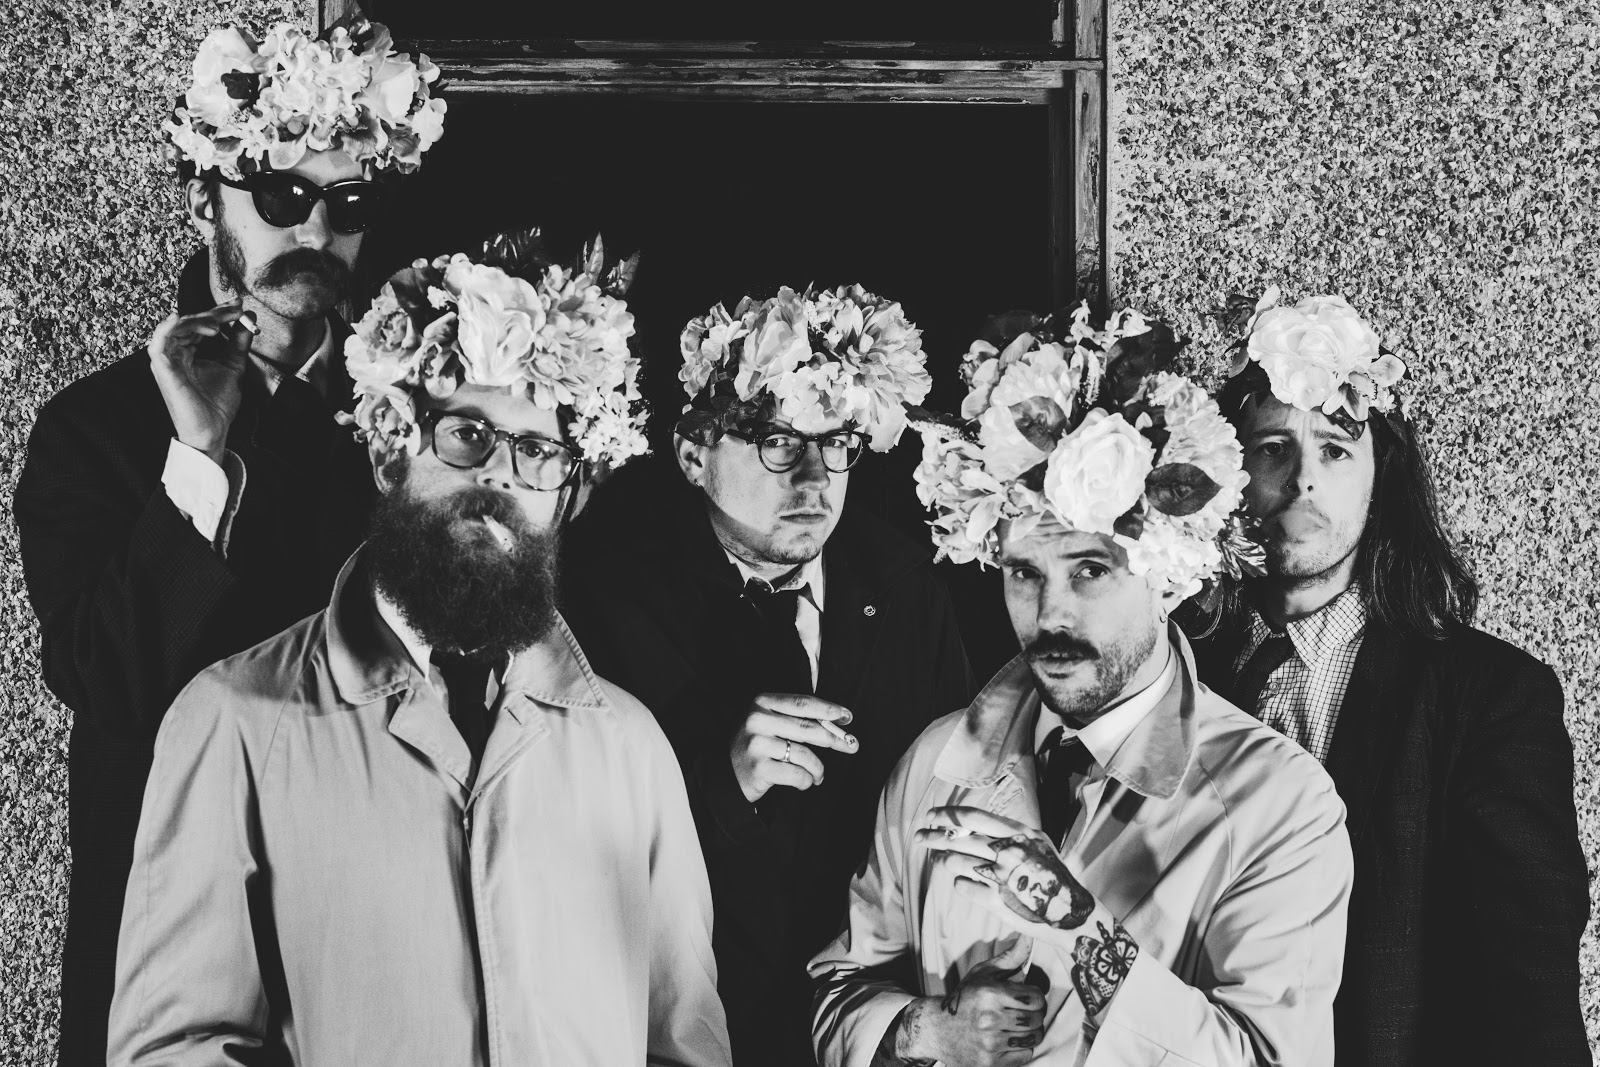 IDLES SET TO PLAY RAUCOUS LIVE SHOW IN 60-CAPACITY CAMDEN VENUE